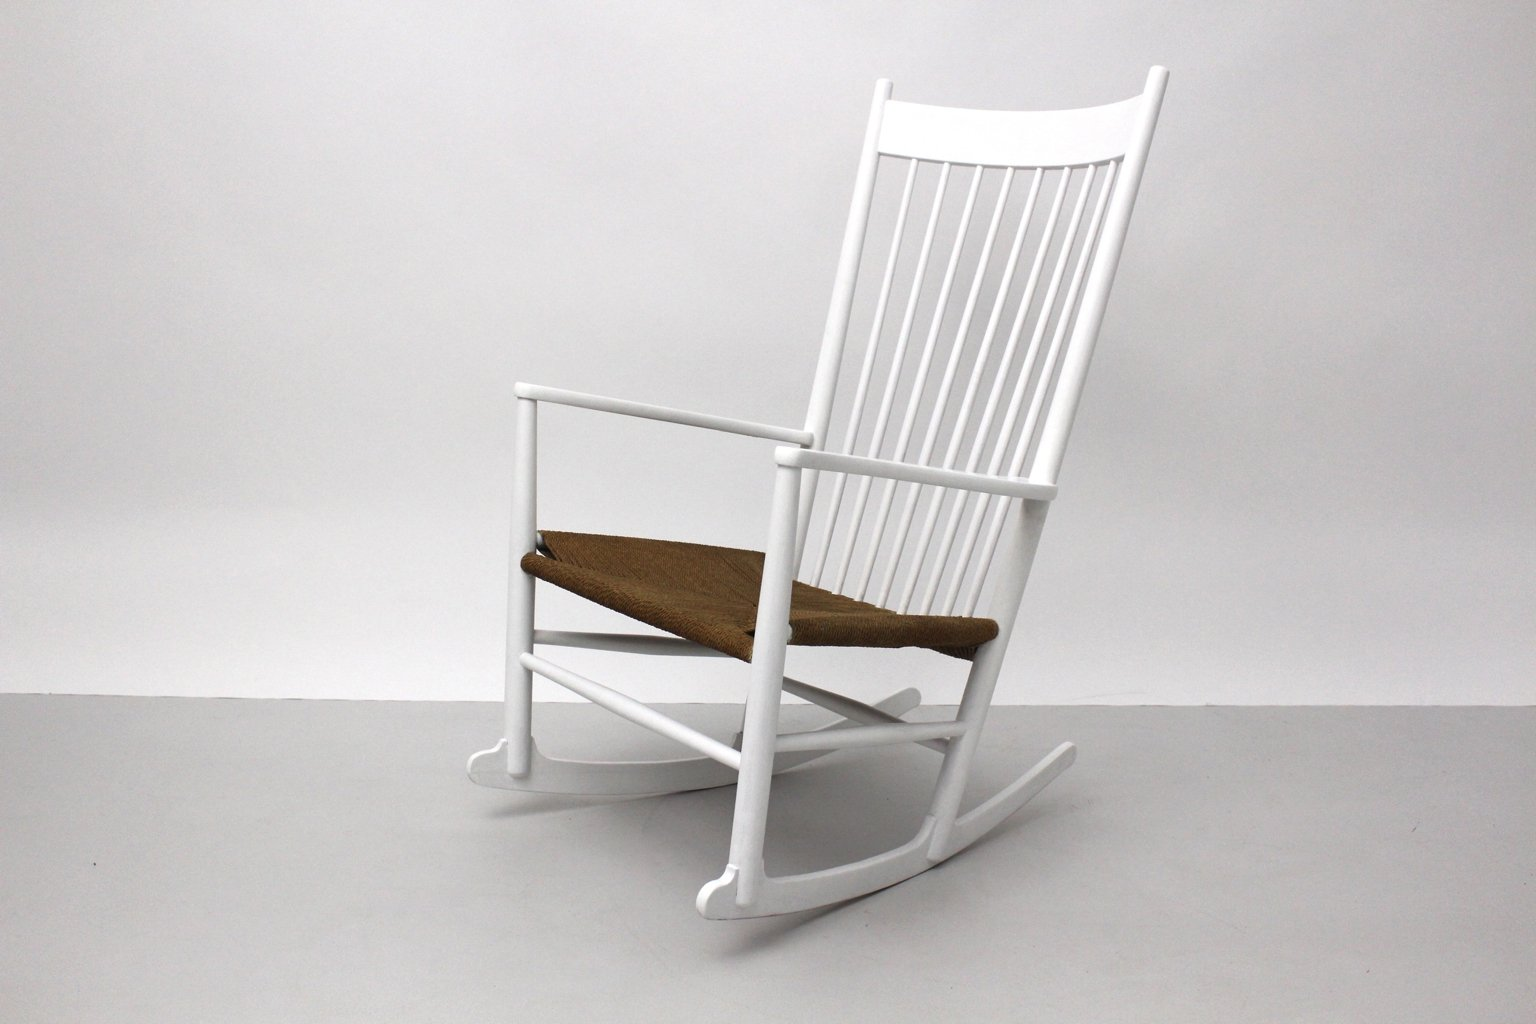 J16 Rocking Chair By Hans Wegner For Mobler F. D. B. 1964 For Sale At . Full resolution‎  portraiture, nominally Width 1536 Height 1024 pixels, portraiture with #5F452B.